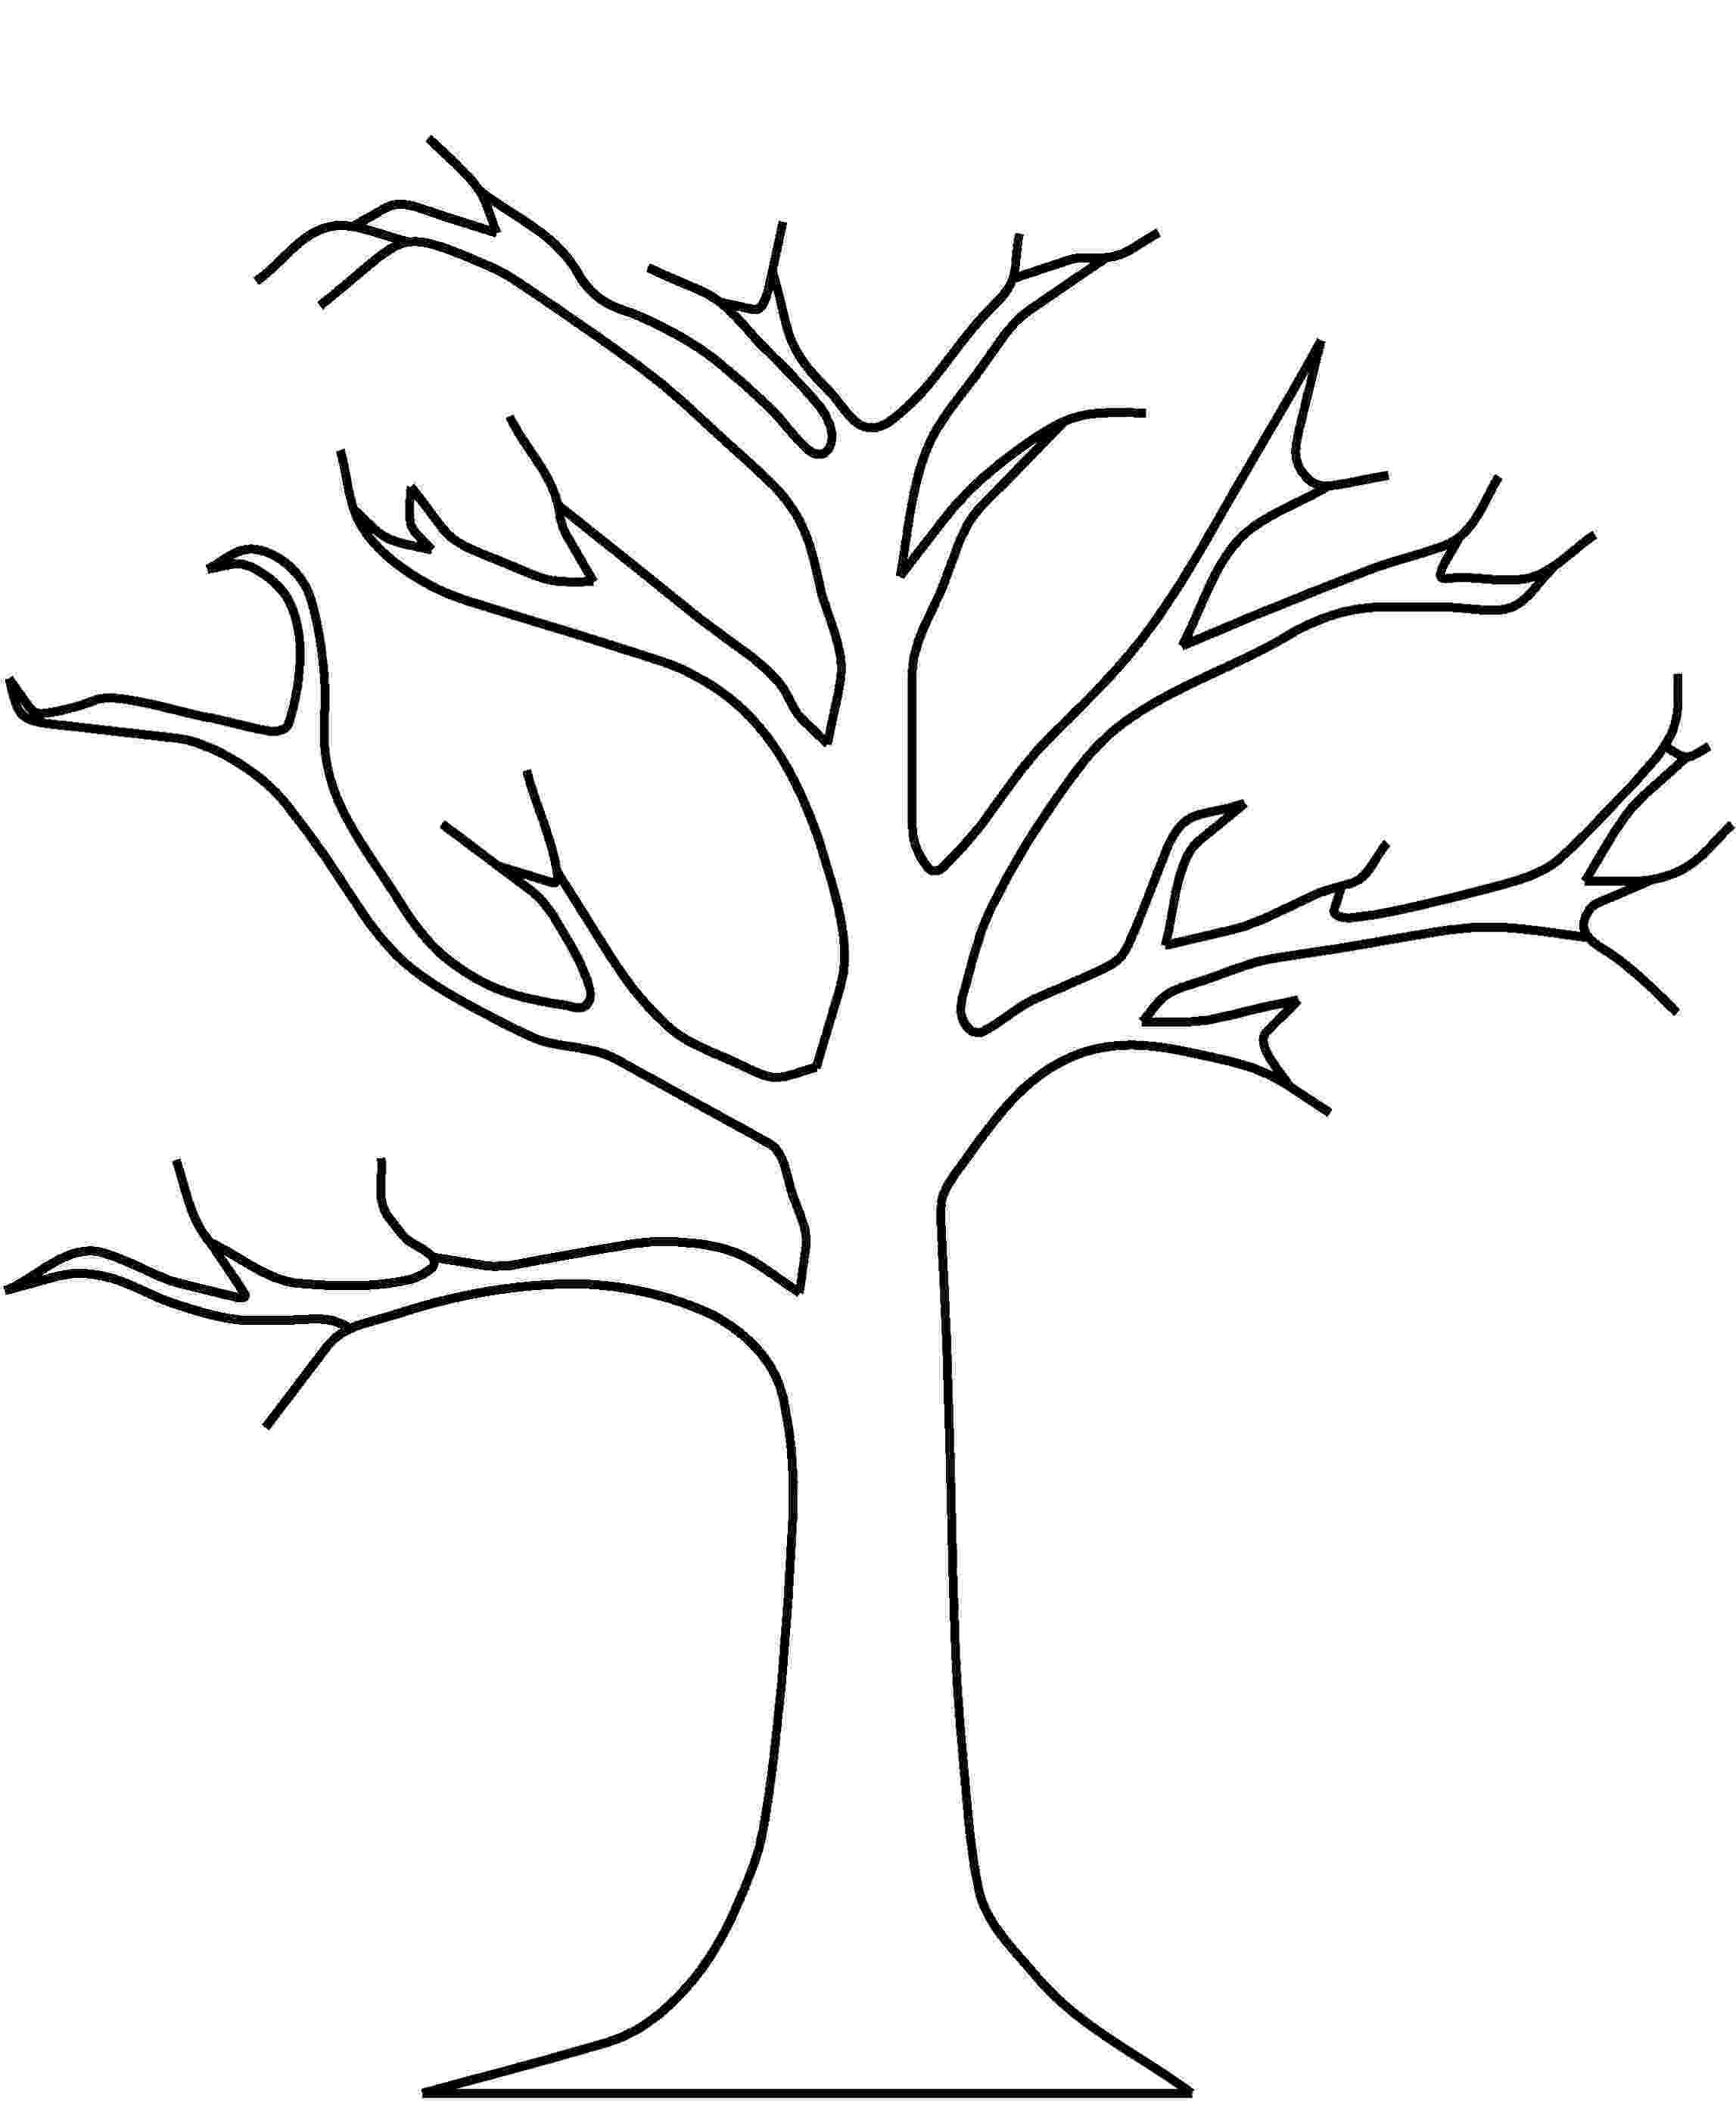 fall tree coloring pages fall leaves coloring pages best coloring pages for kids tree fall coloring pages